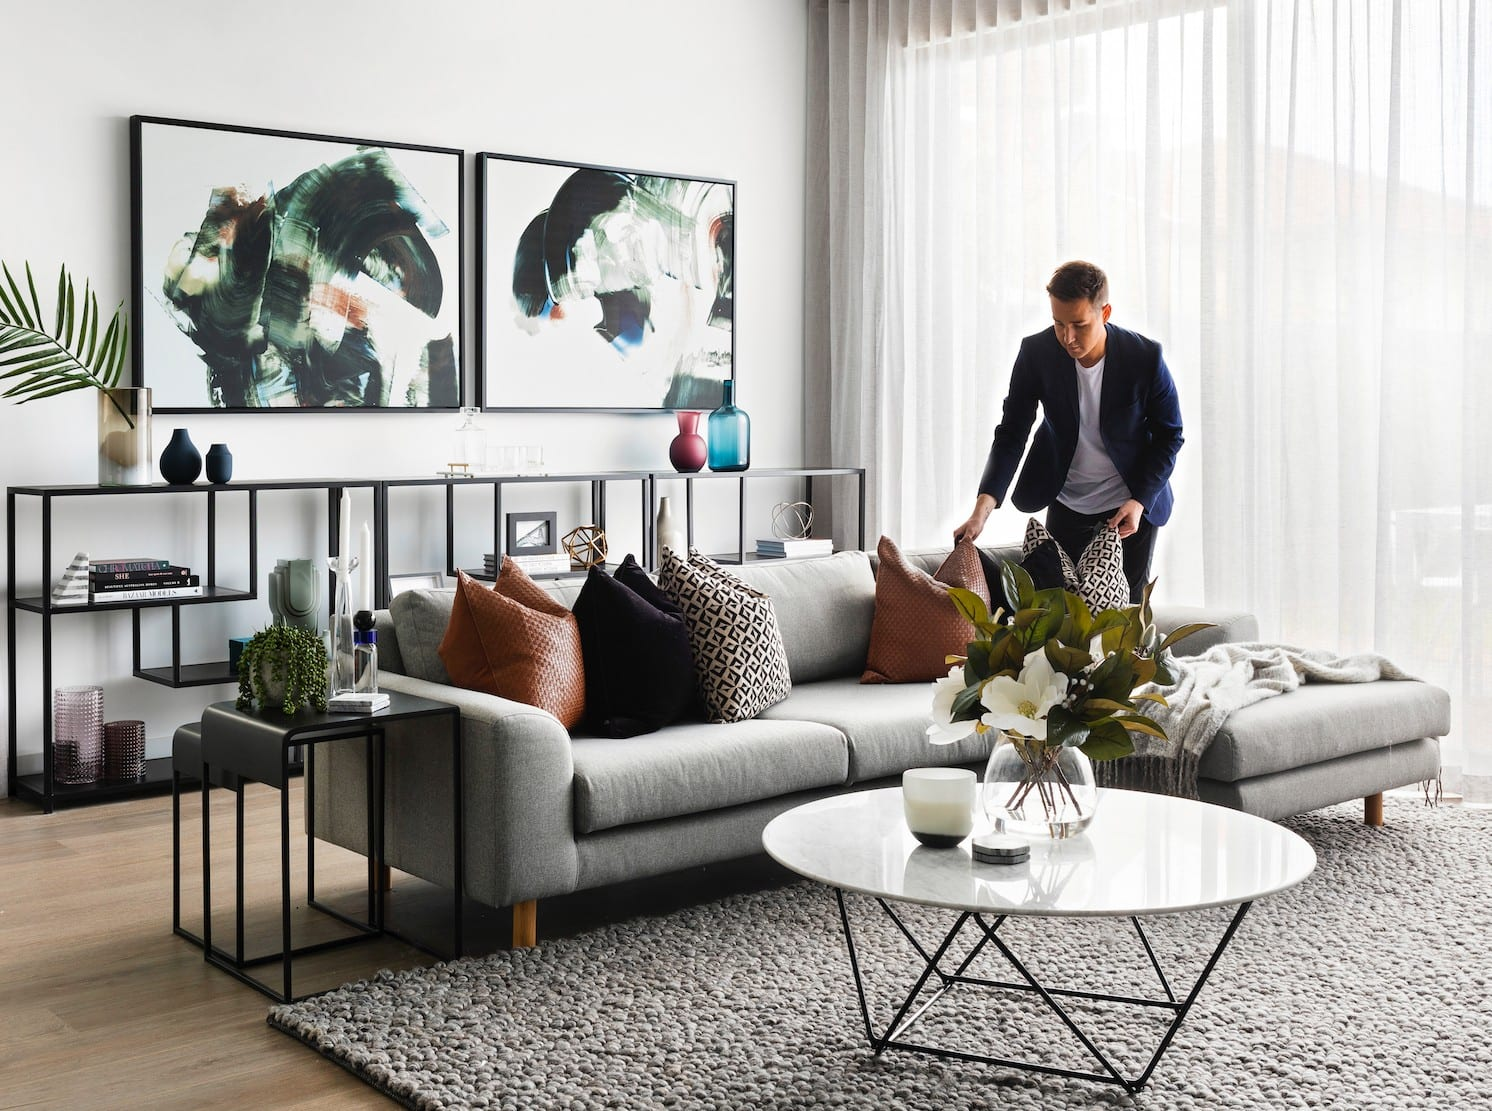 chris carroll melbourne interior designer in client living room with modern luxe design